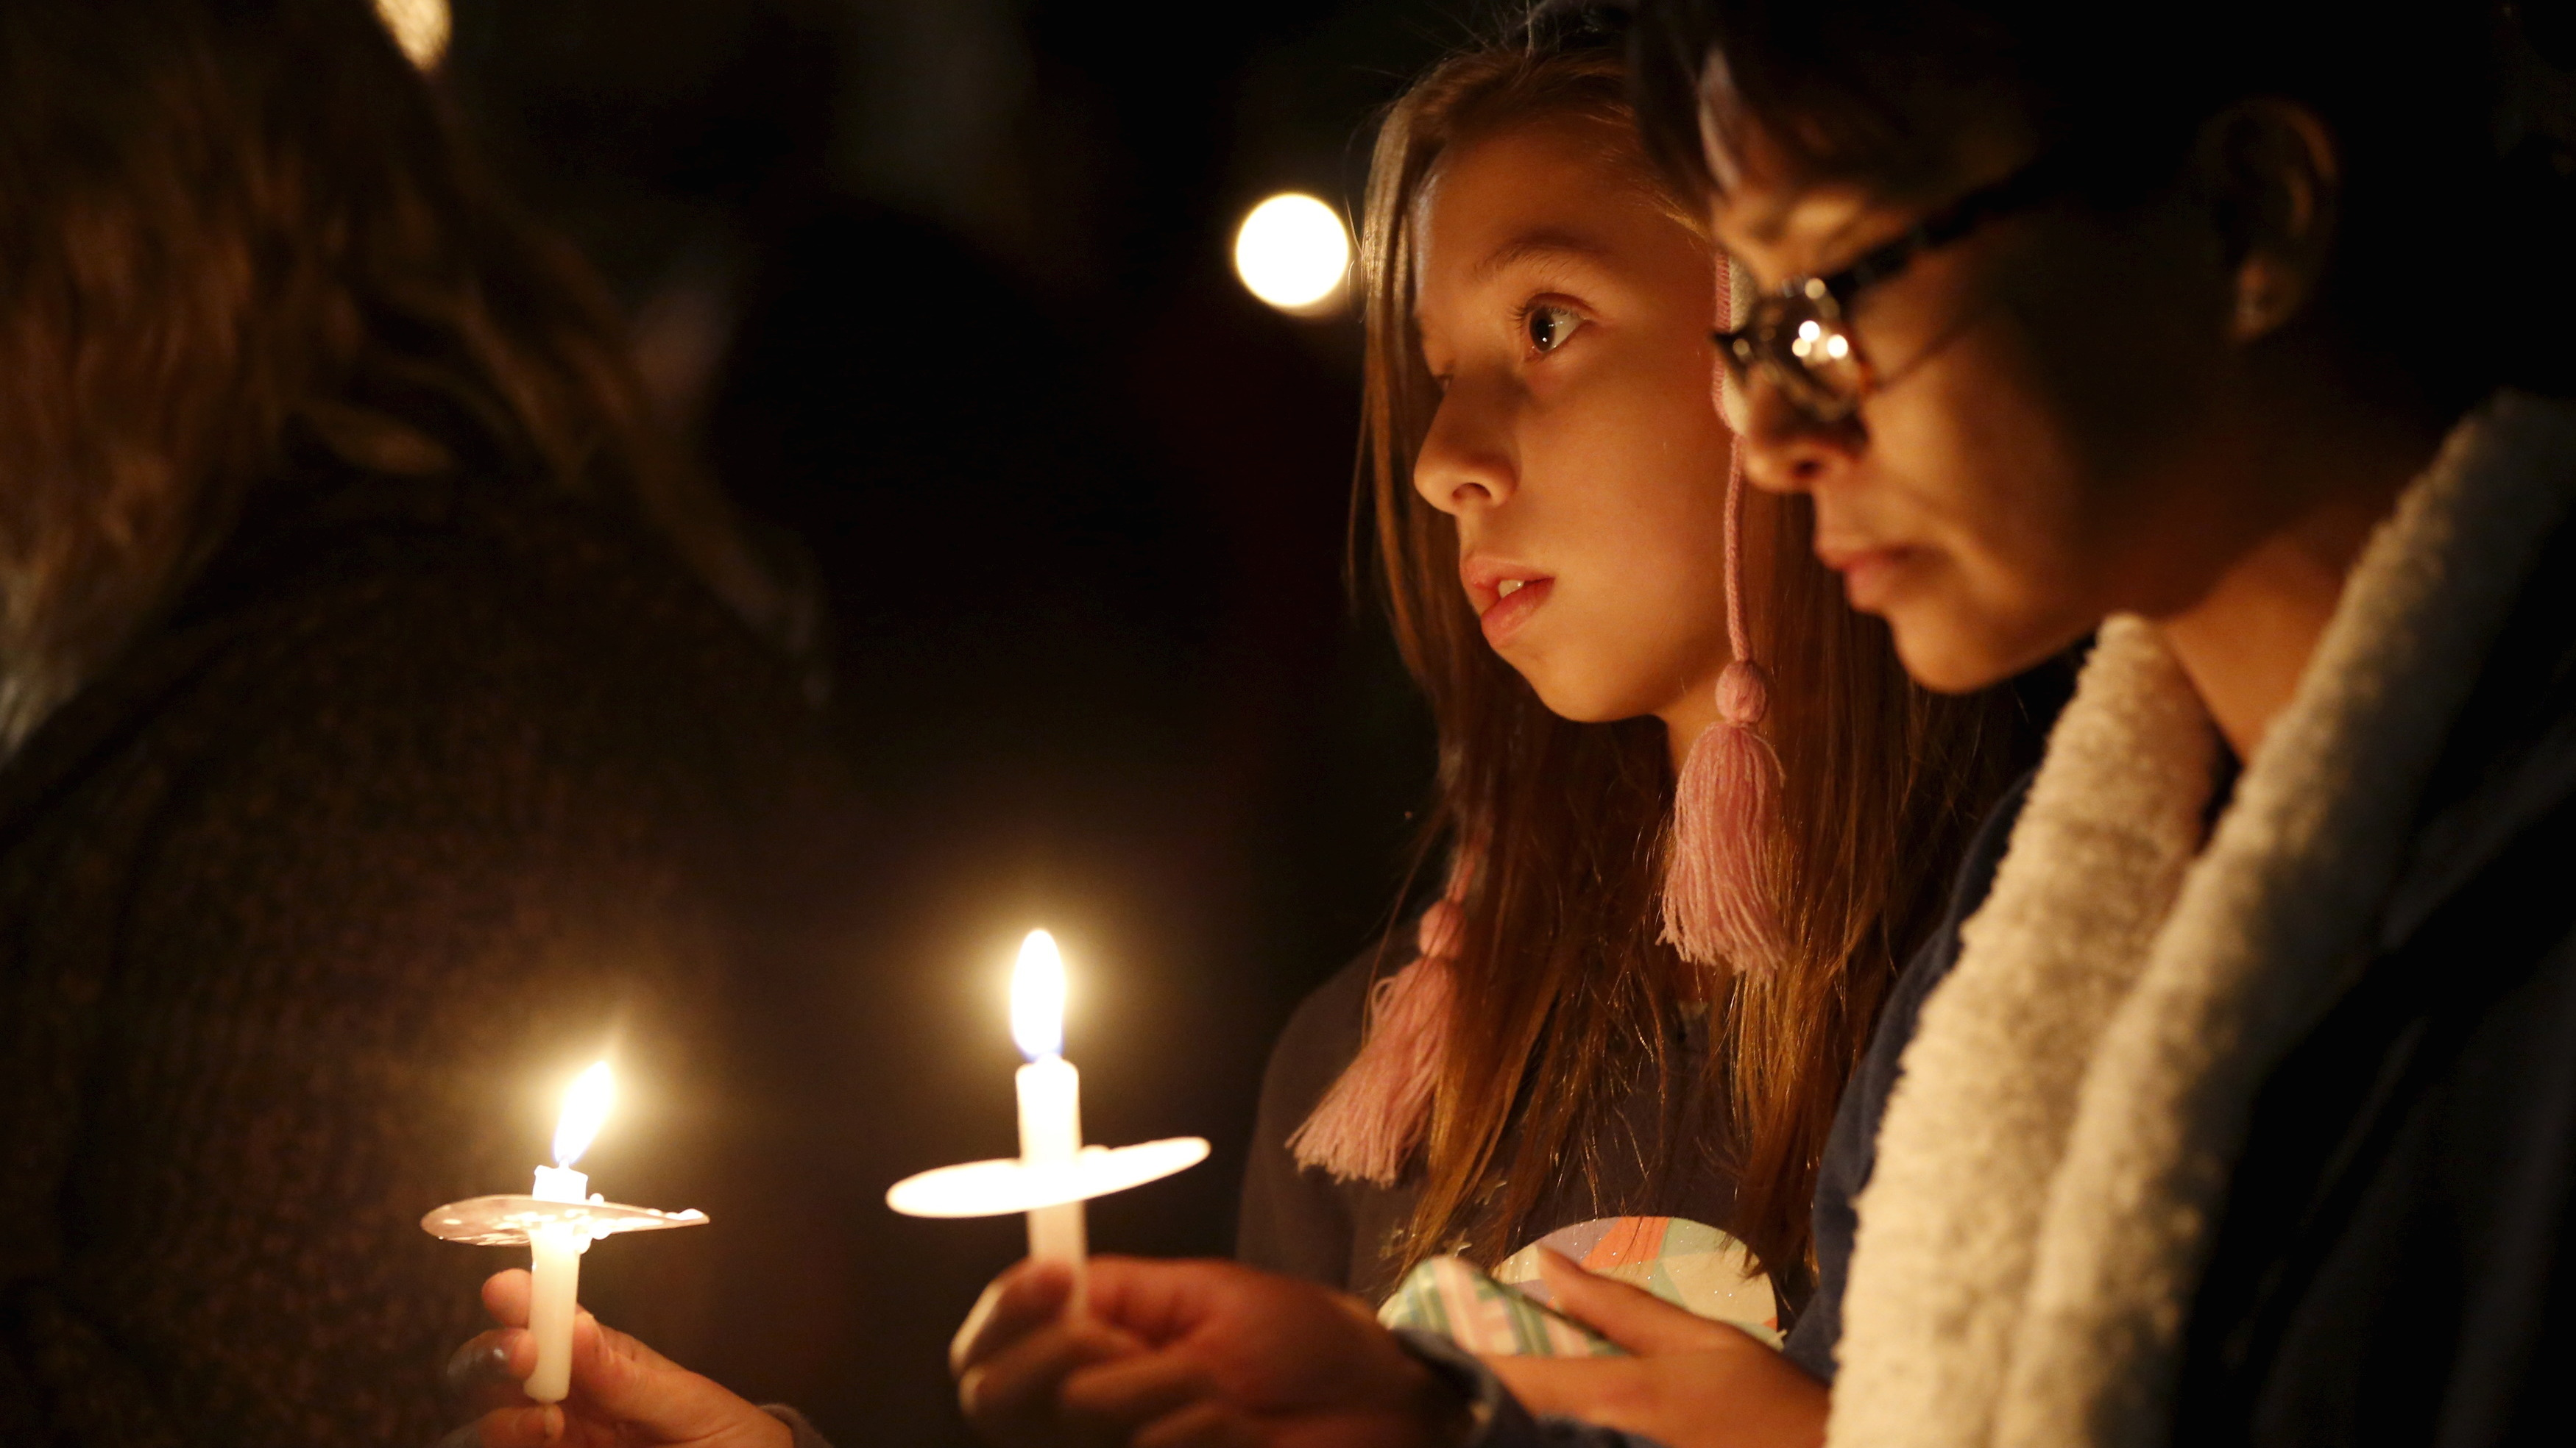 Attendees reflect on the tragedy of Wednesday's attack during a candlelight vigil in San Bernardino, California December 3, 2015. California shooter Syed Rizwan Farook, 28, and Tashfeen Malik, 27, his wife and mother of his 6-month-old daughter, were killed in a shootout with police after the couple opened fire at the Inland Regional Center social services agency in the city of San Bernardino, killing 14 people.   REUTERS/Mario Anzuoni  - RTX1X40A